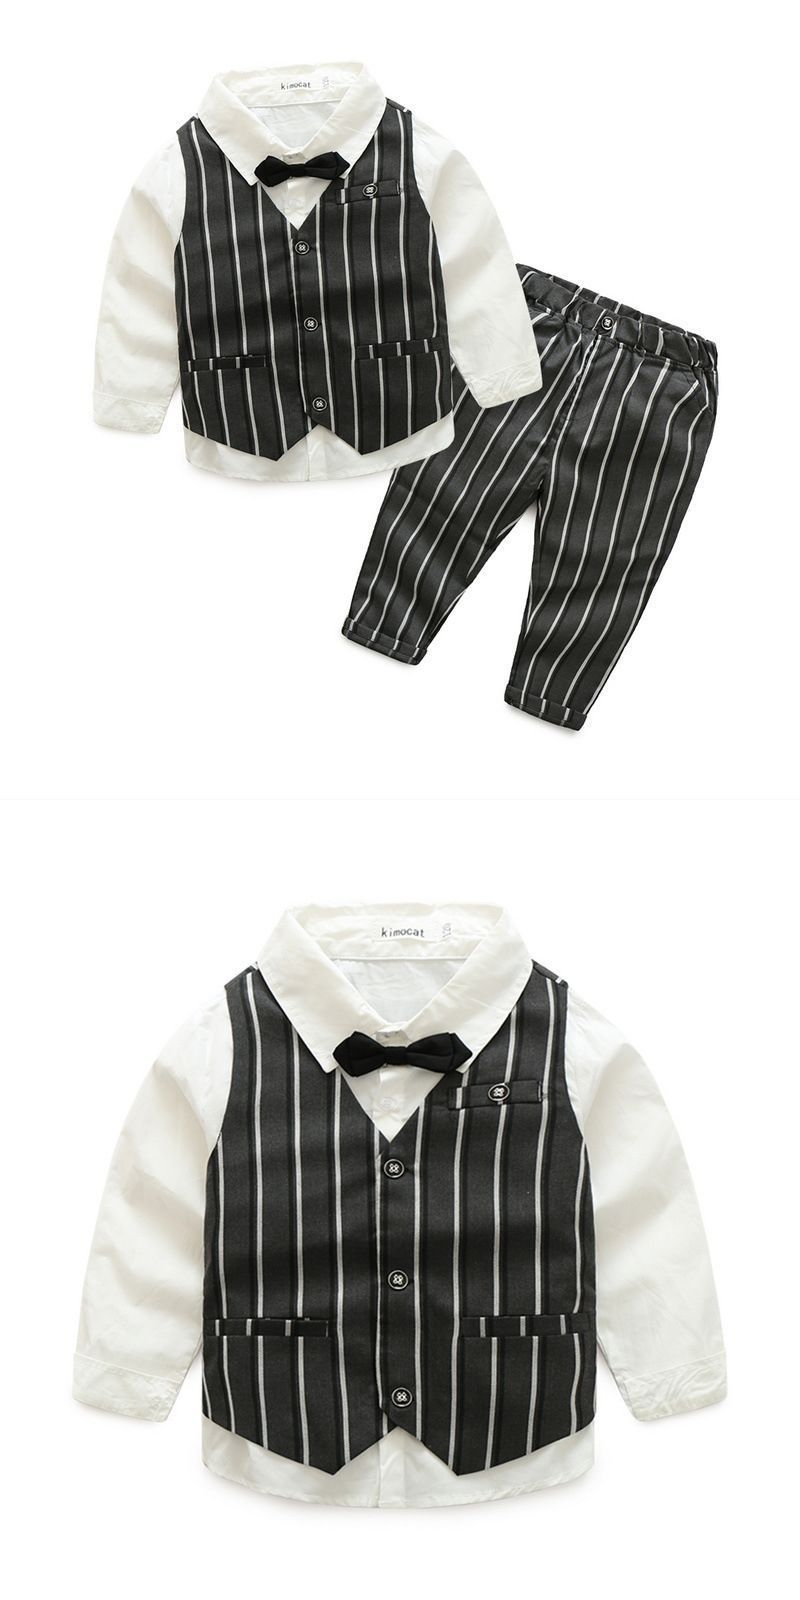 e3b60e0e7a42 Gentlemen boys 4 pcs white shirts and stripes printed vests and pants with  bow tie #